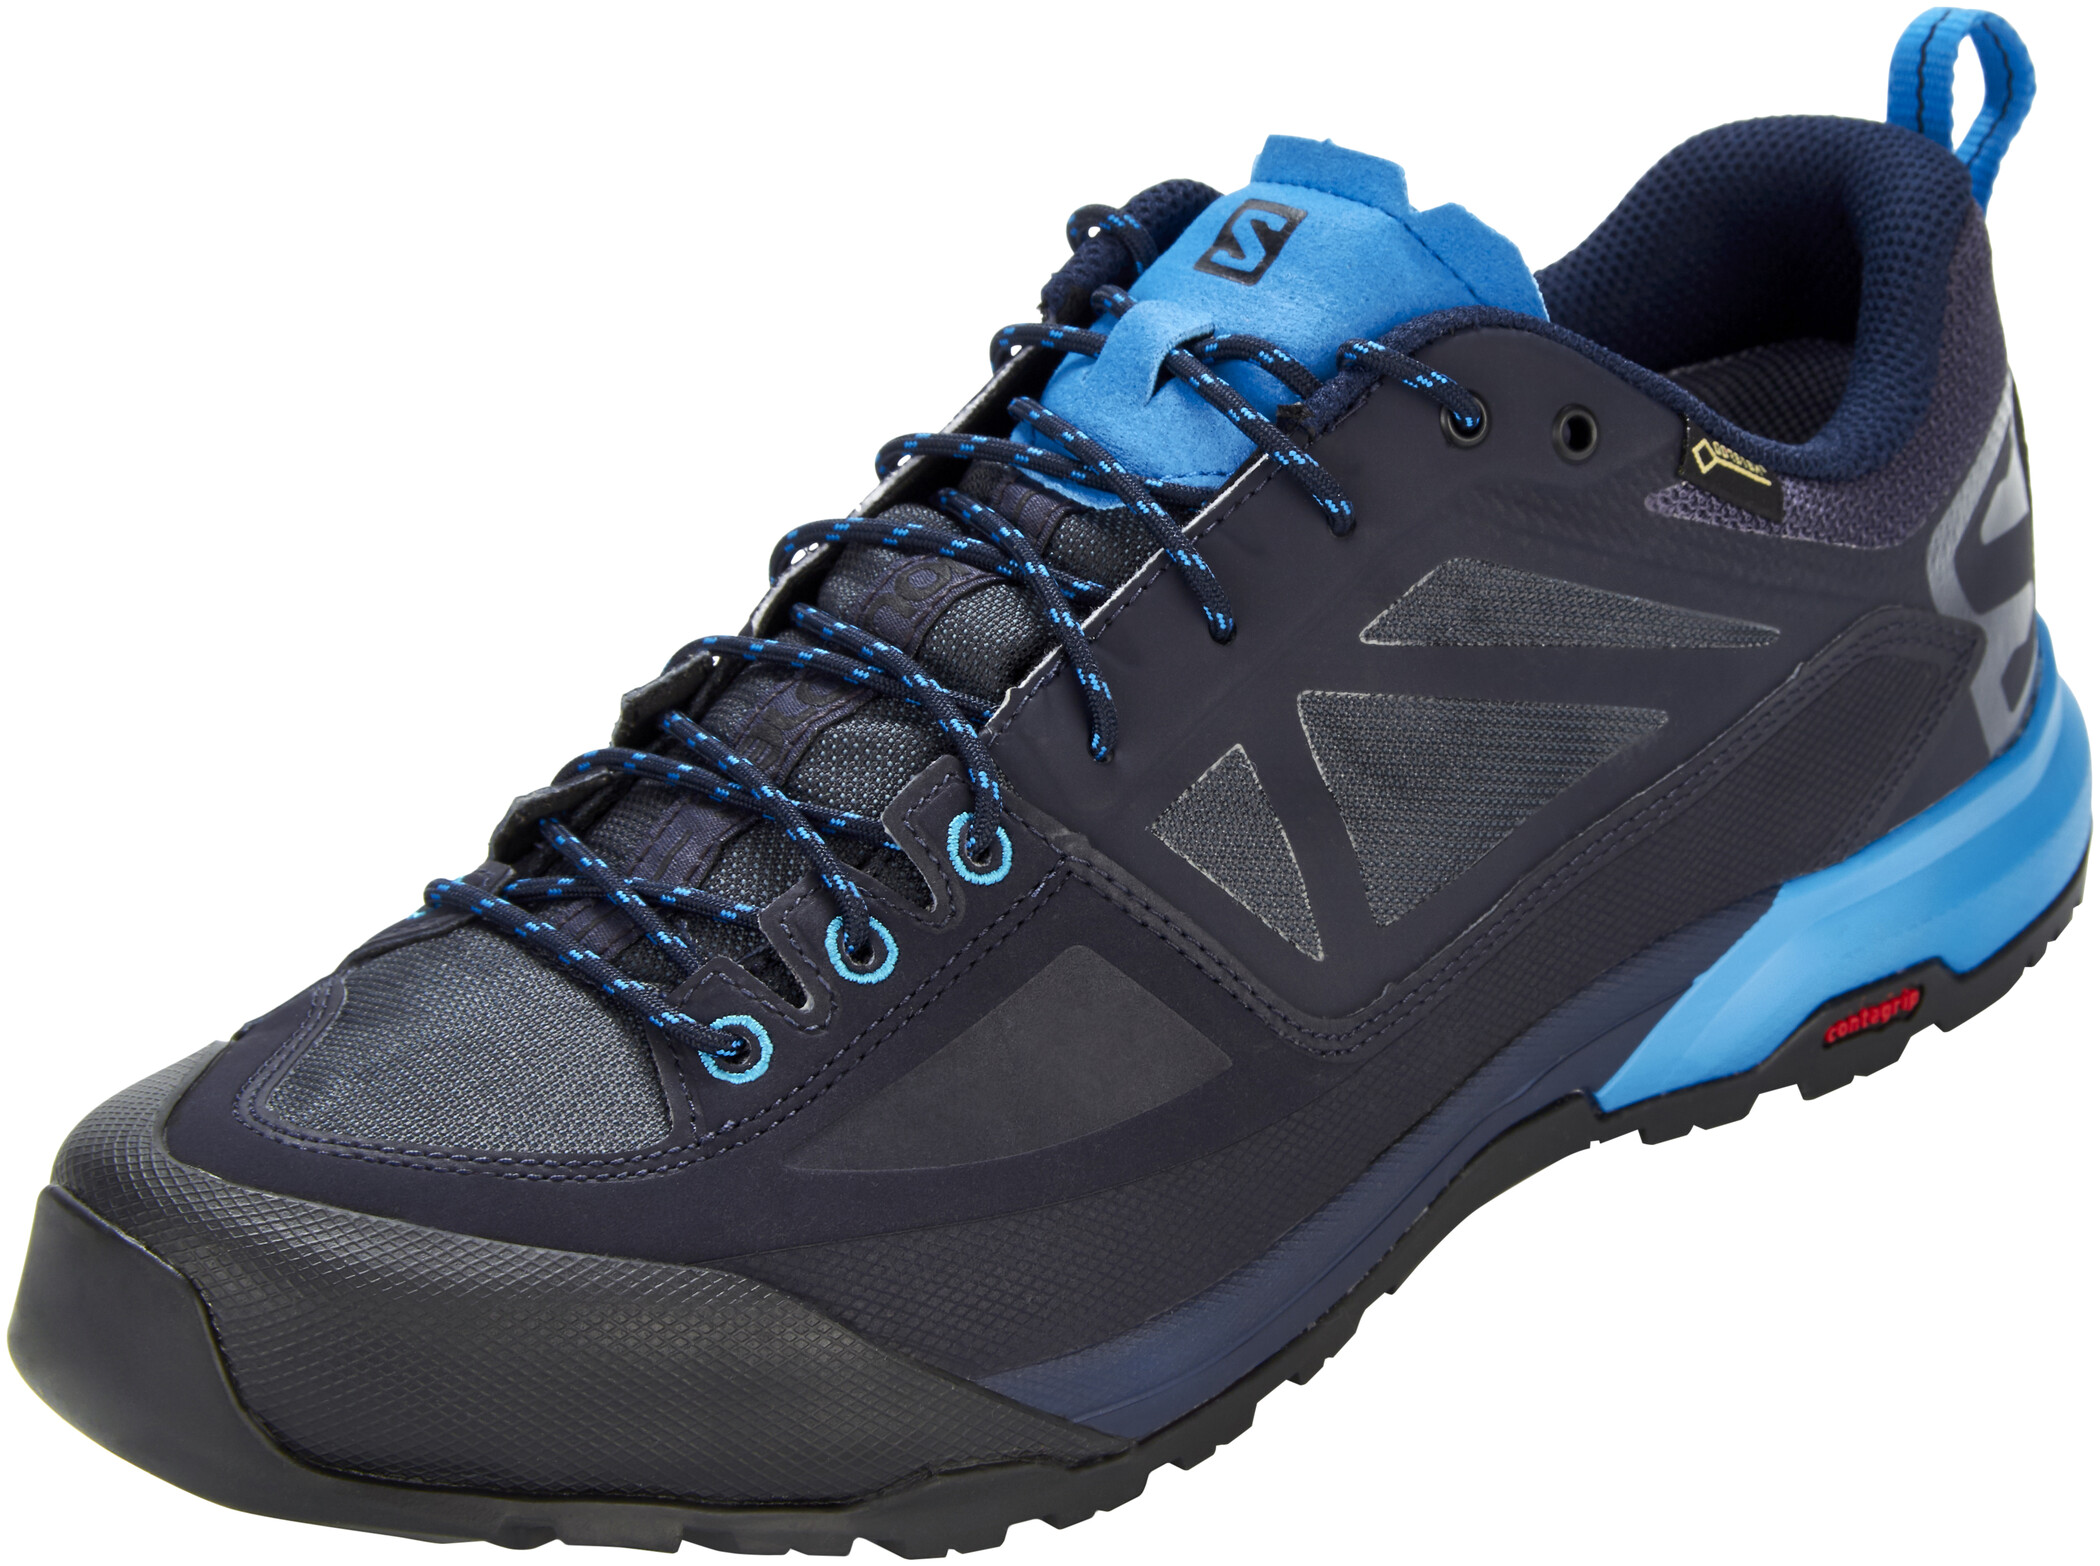 Salomon X Alp SPRY GTX Shoes Herr night skygraphiteindigo bunting